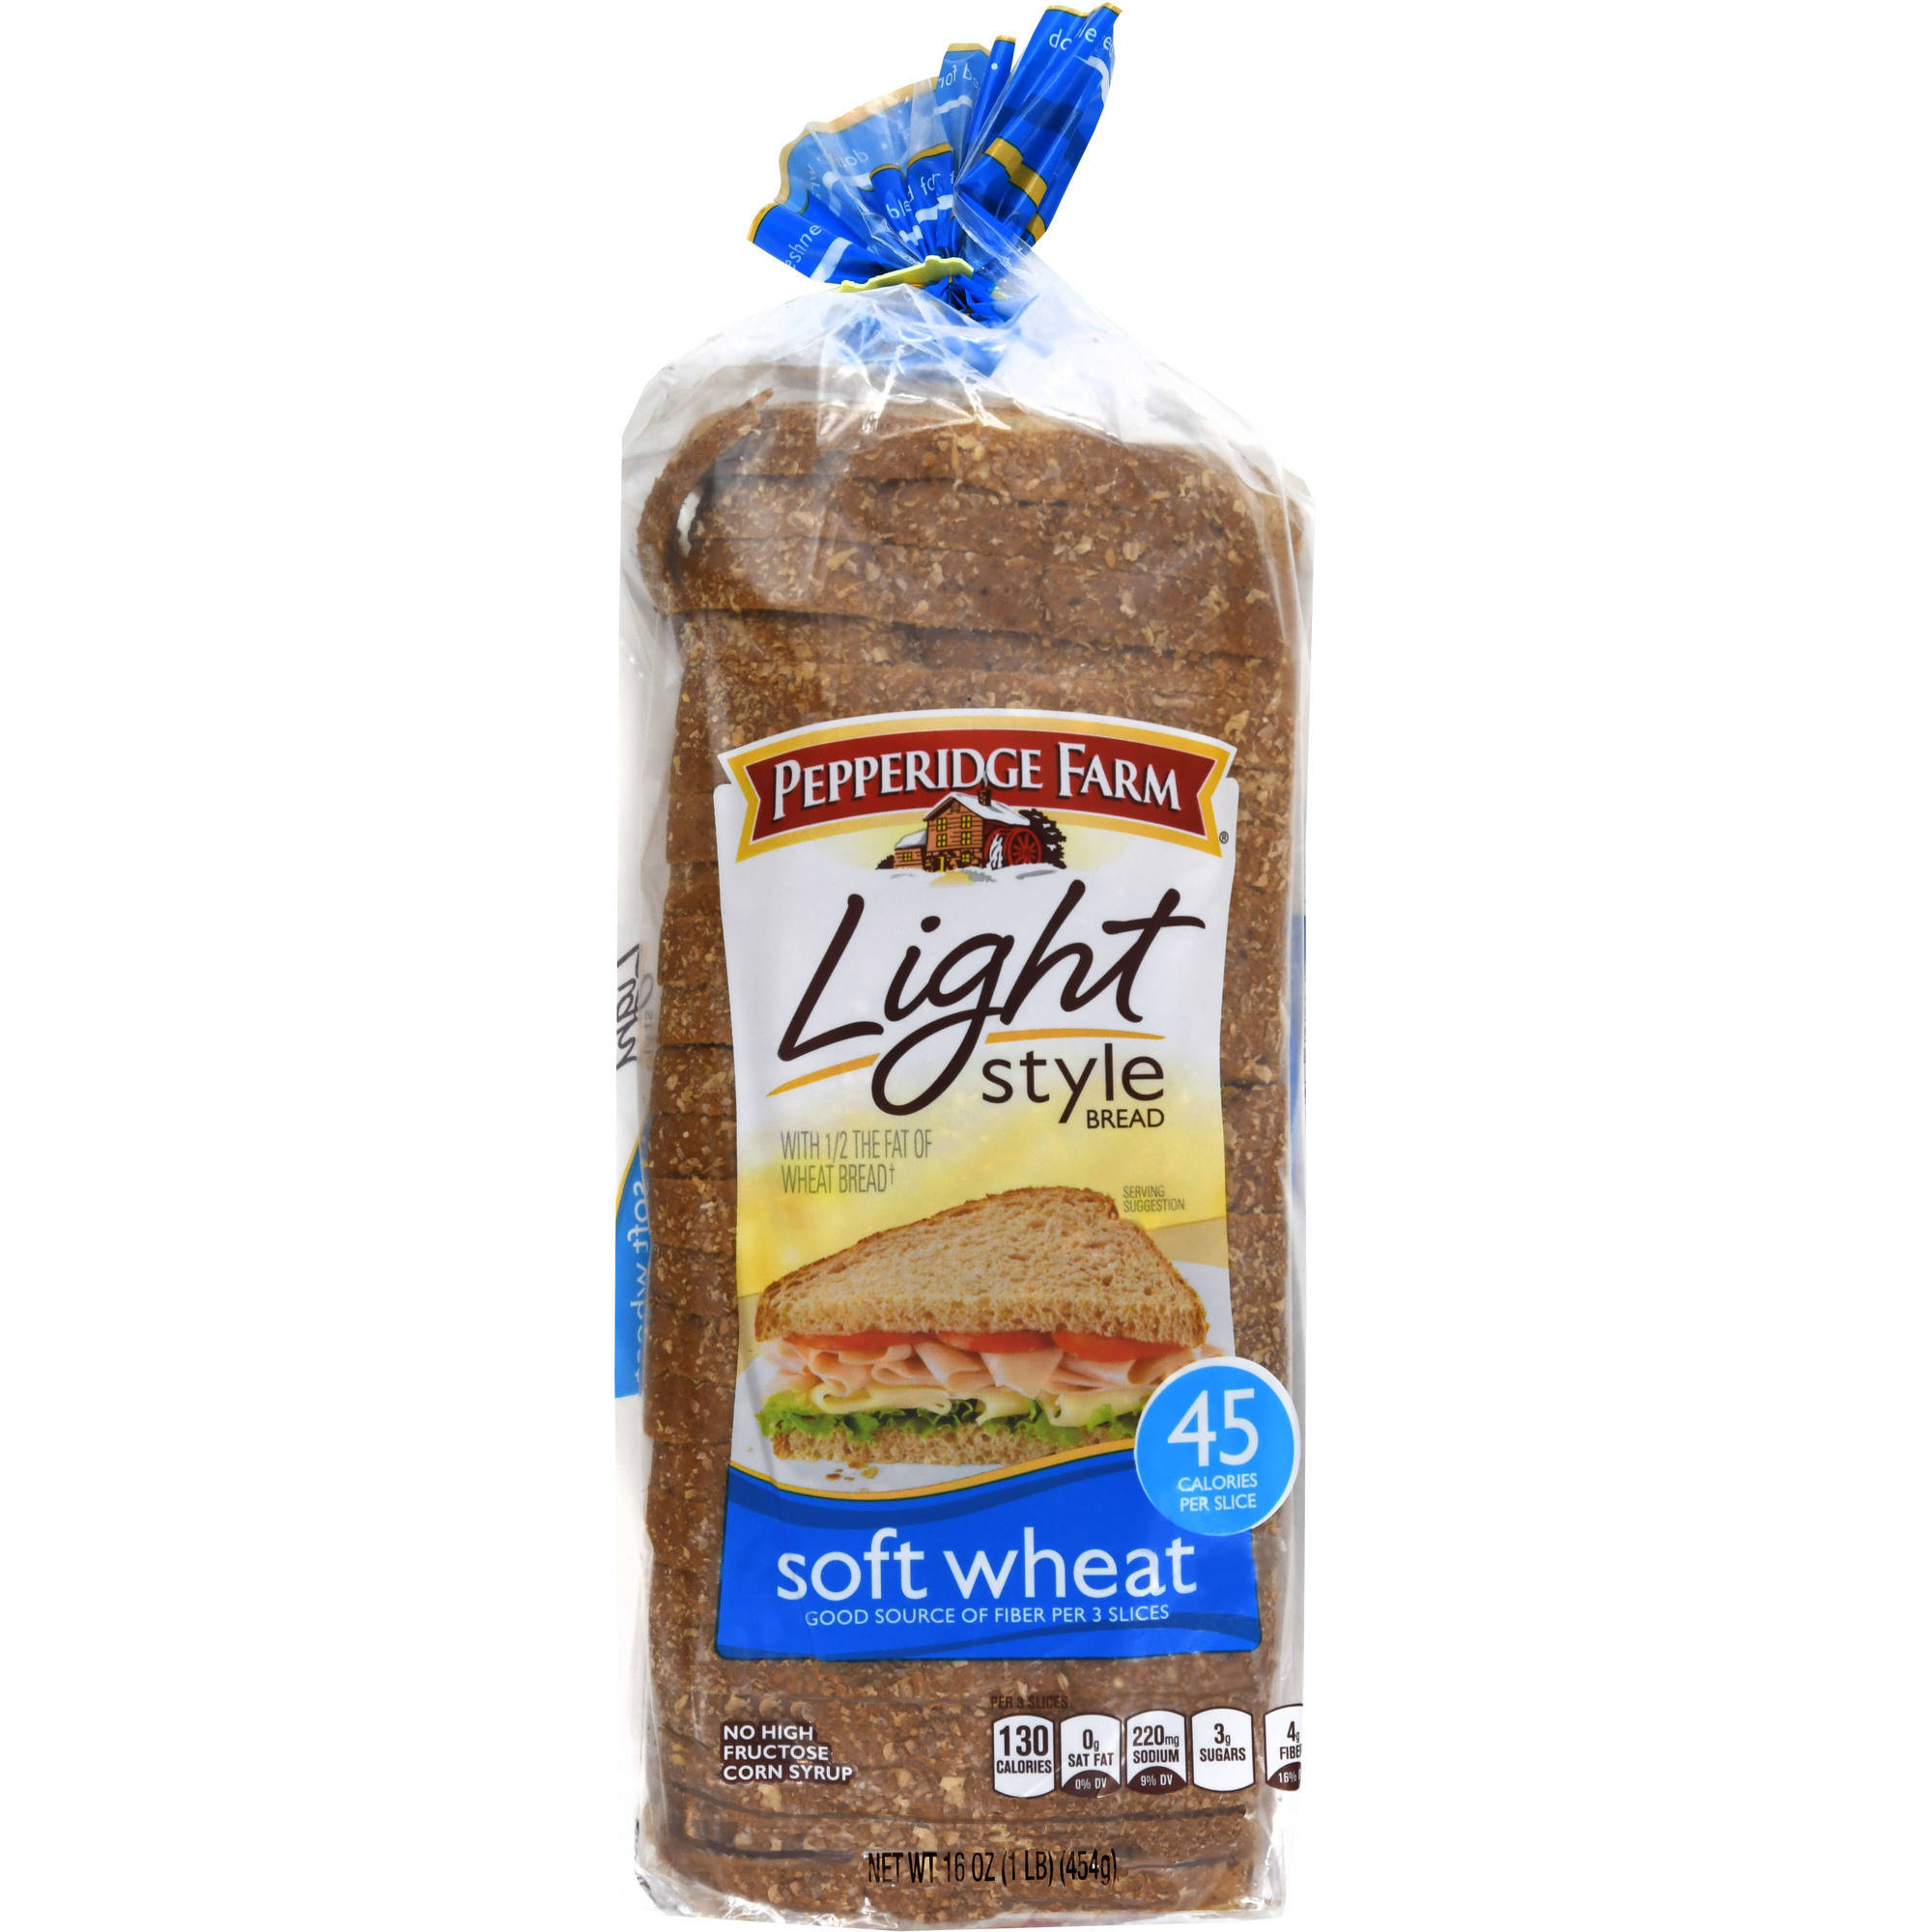 Pepperidge Farm Light Style Soft Wheat Bread 16oz Pack